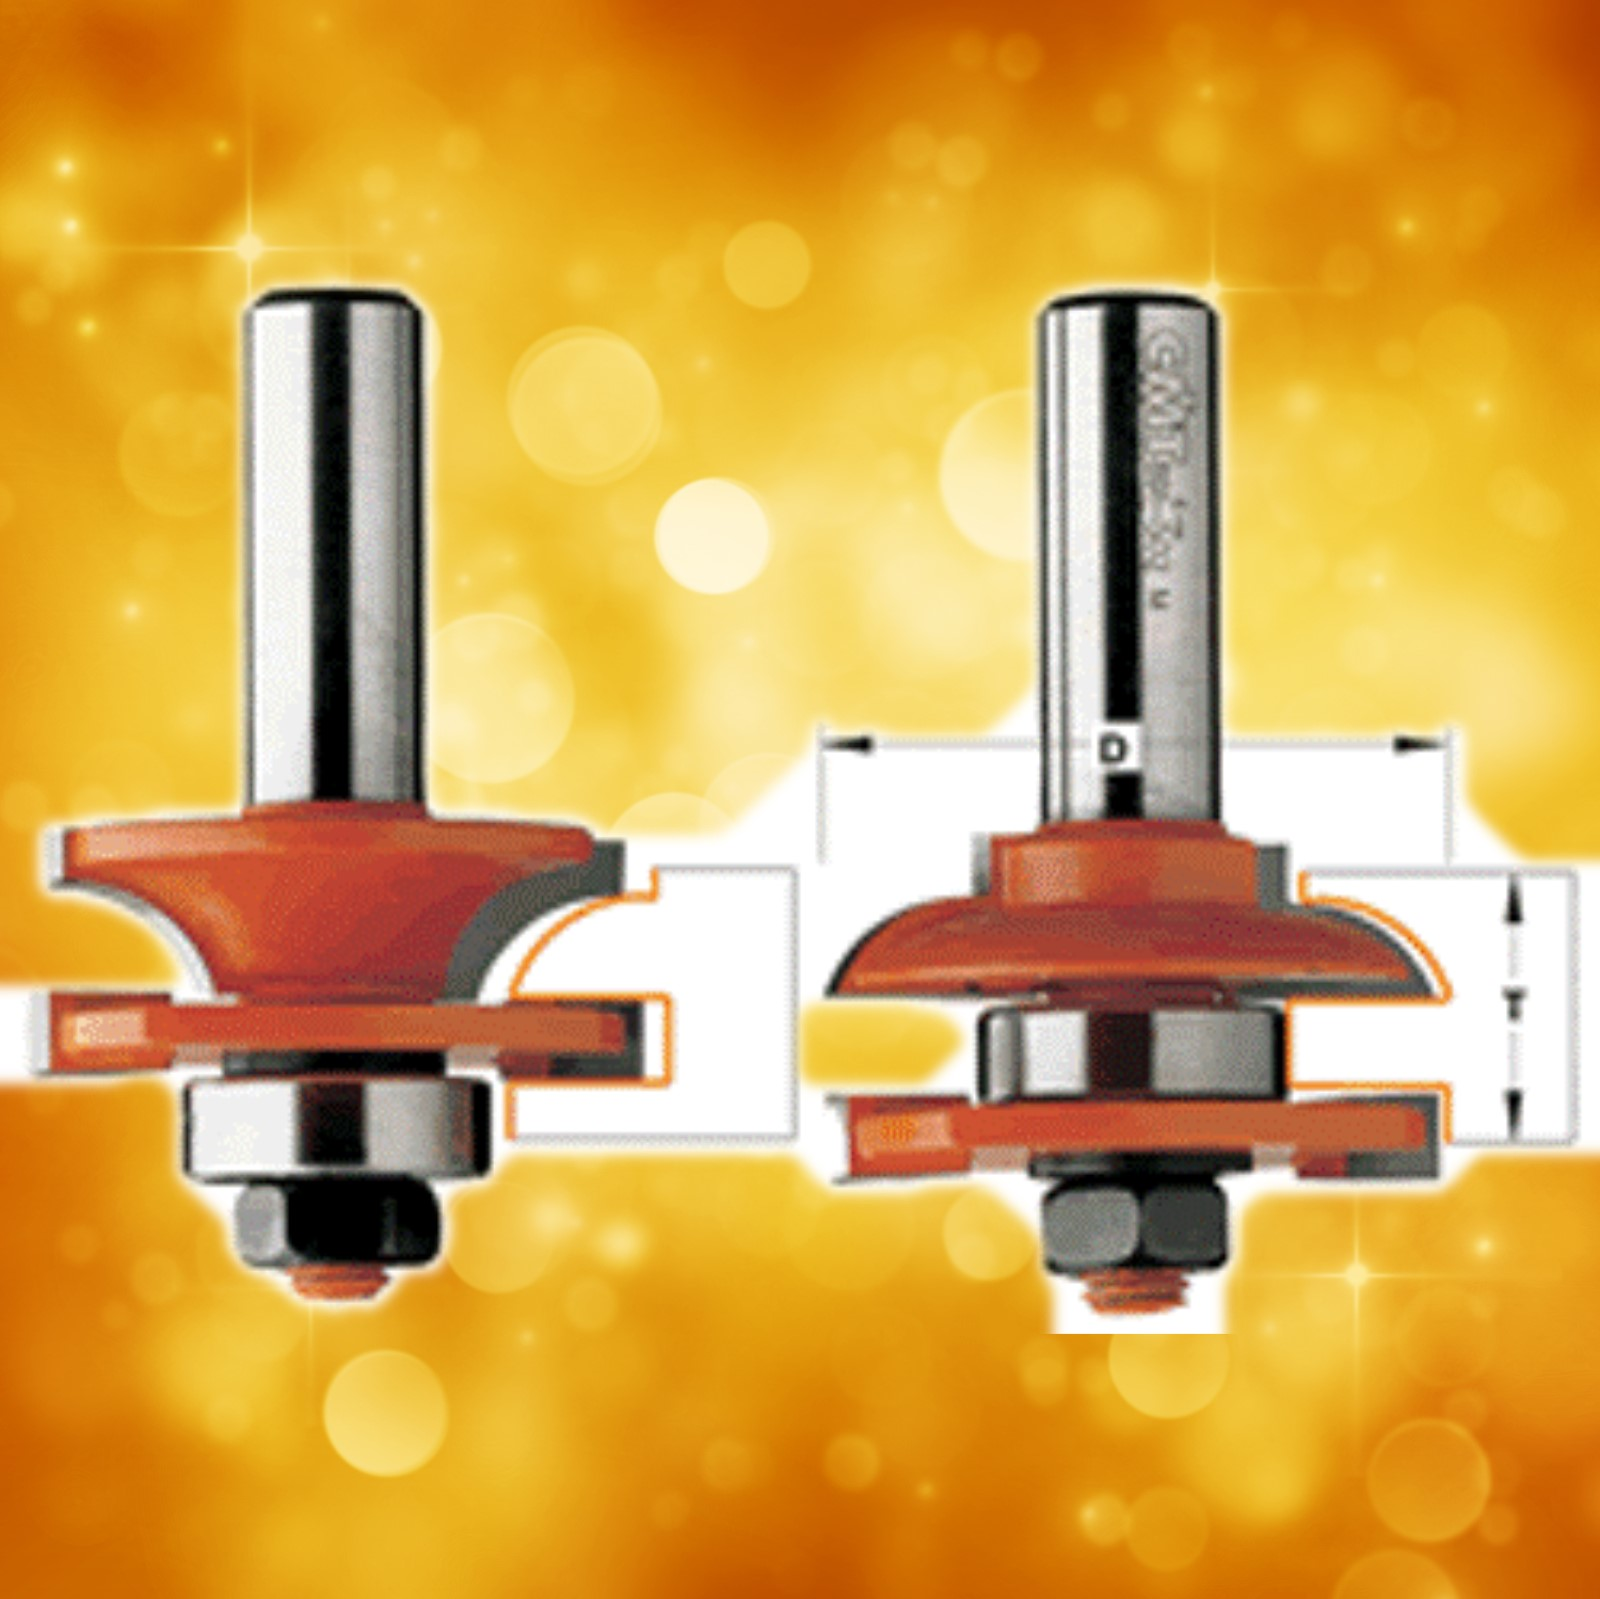 CMT Rail and Stile Router Bit Set 891.503.11 - Profile C